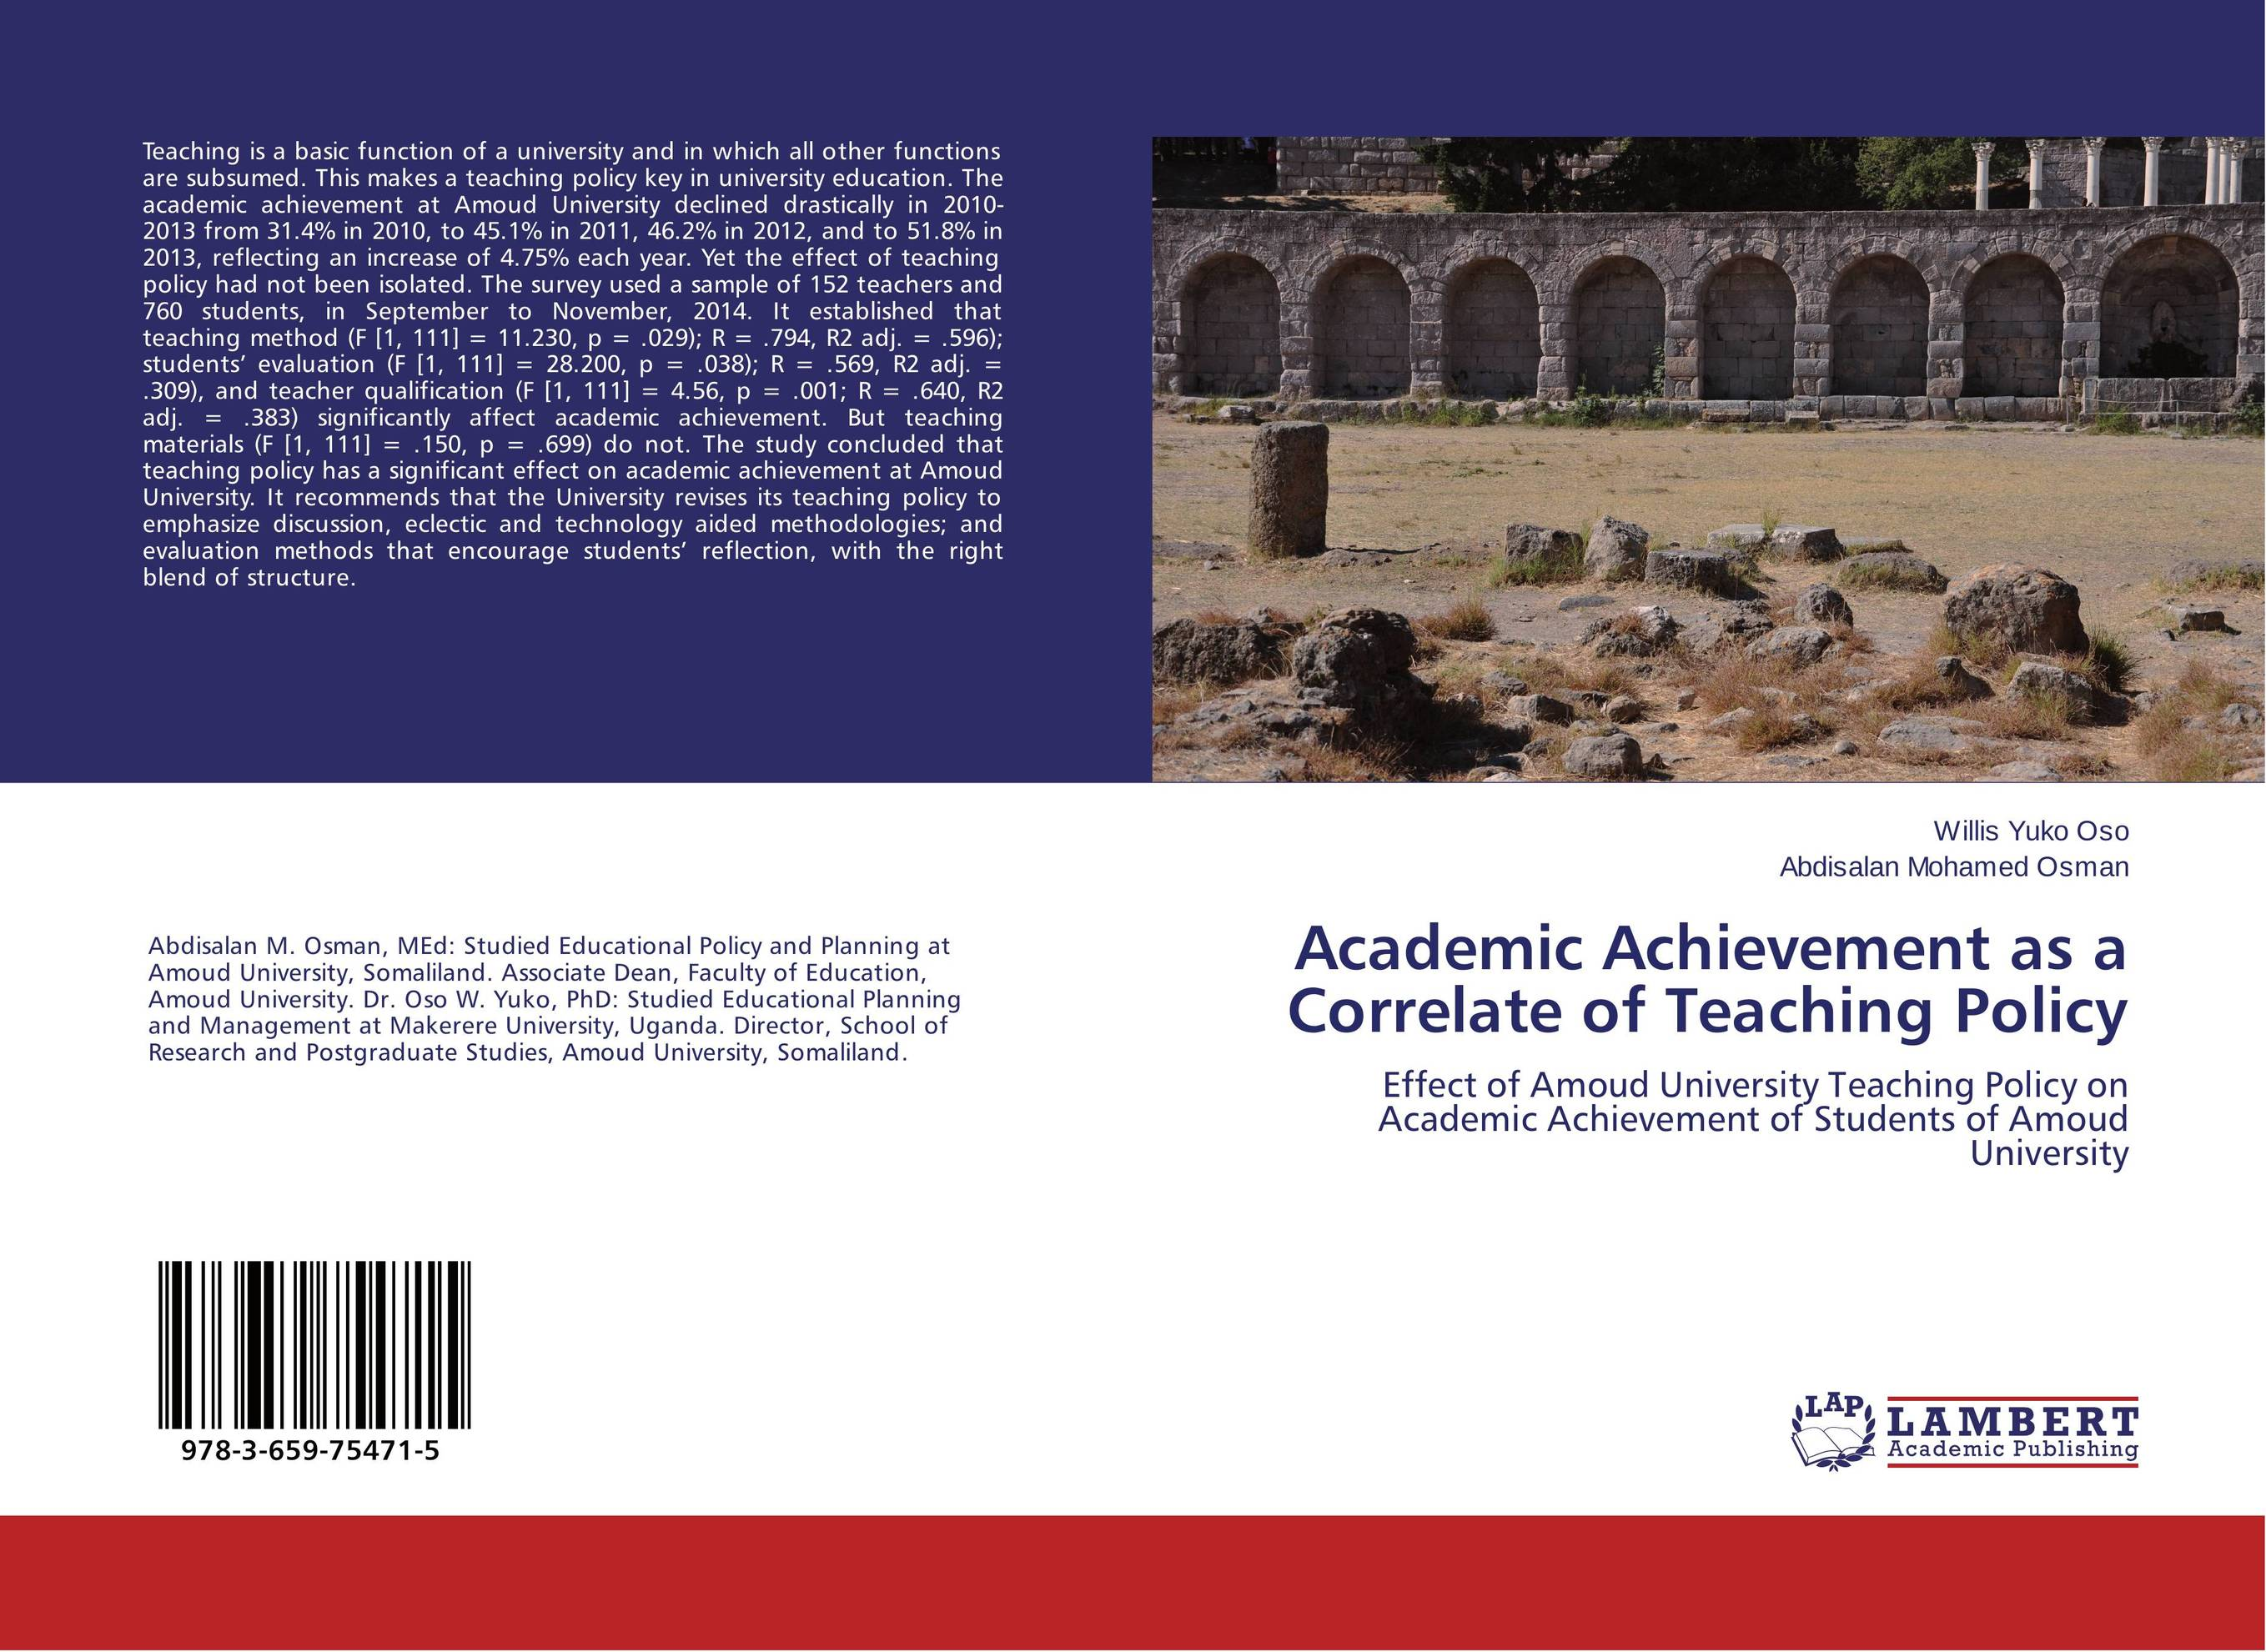 Academic Achievement as a Correlate of Teaching Policy